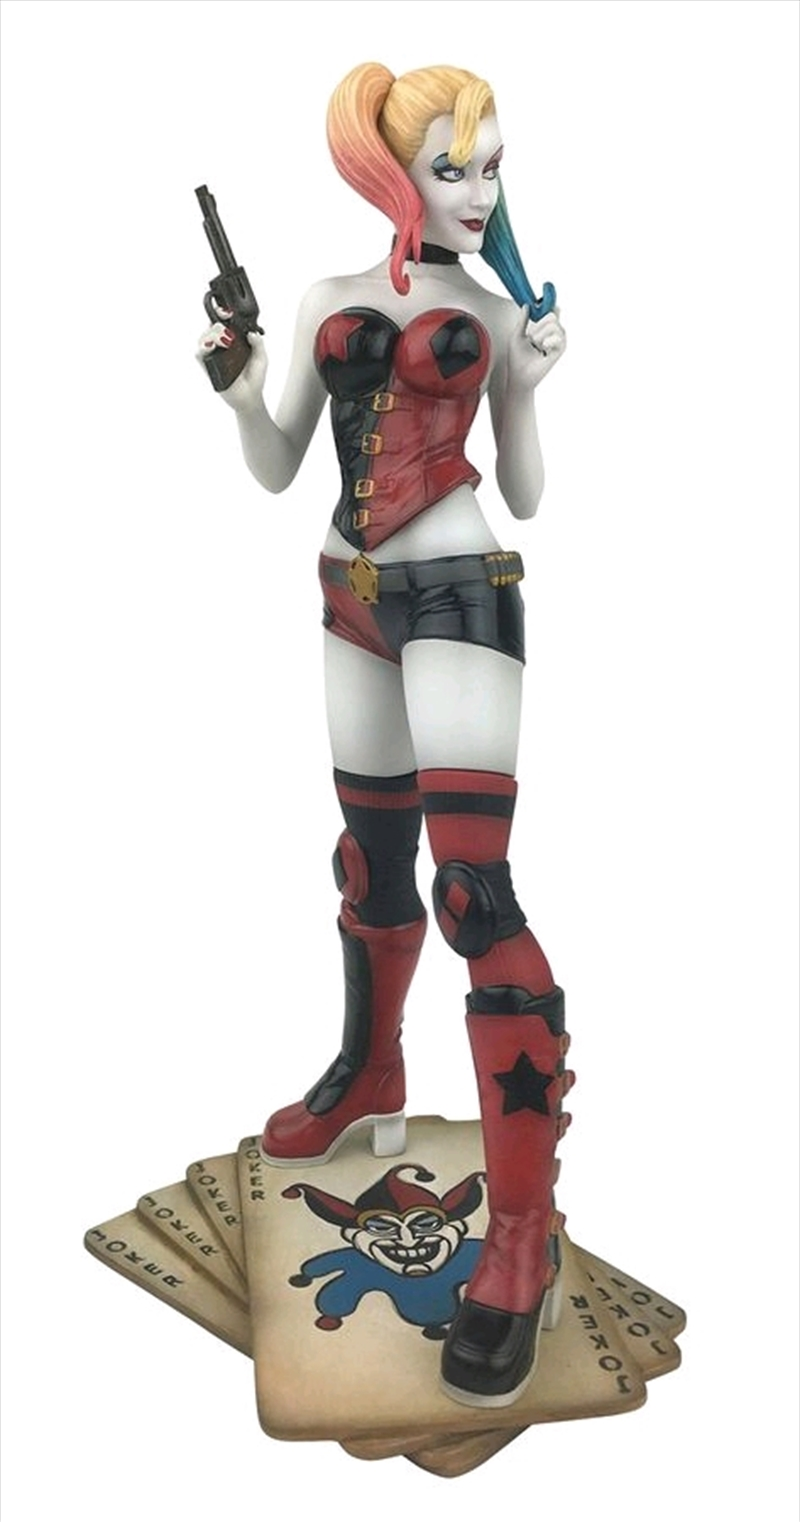 Batman - Harley Quinn Rebirth PVC Figure | Merchandise